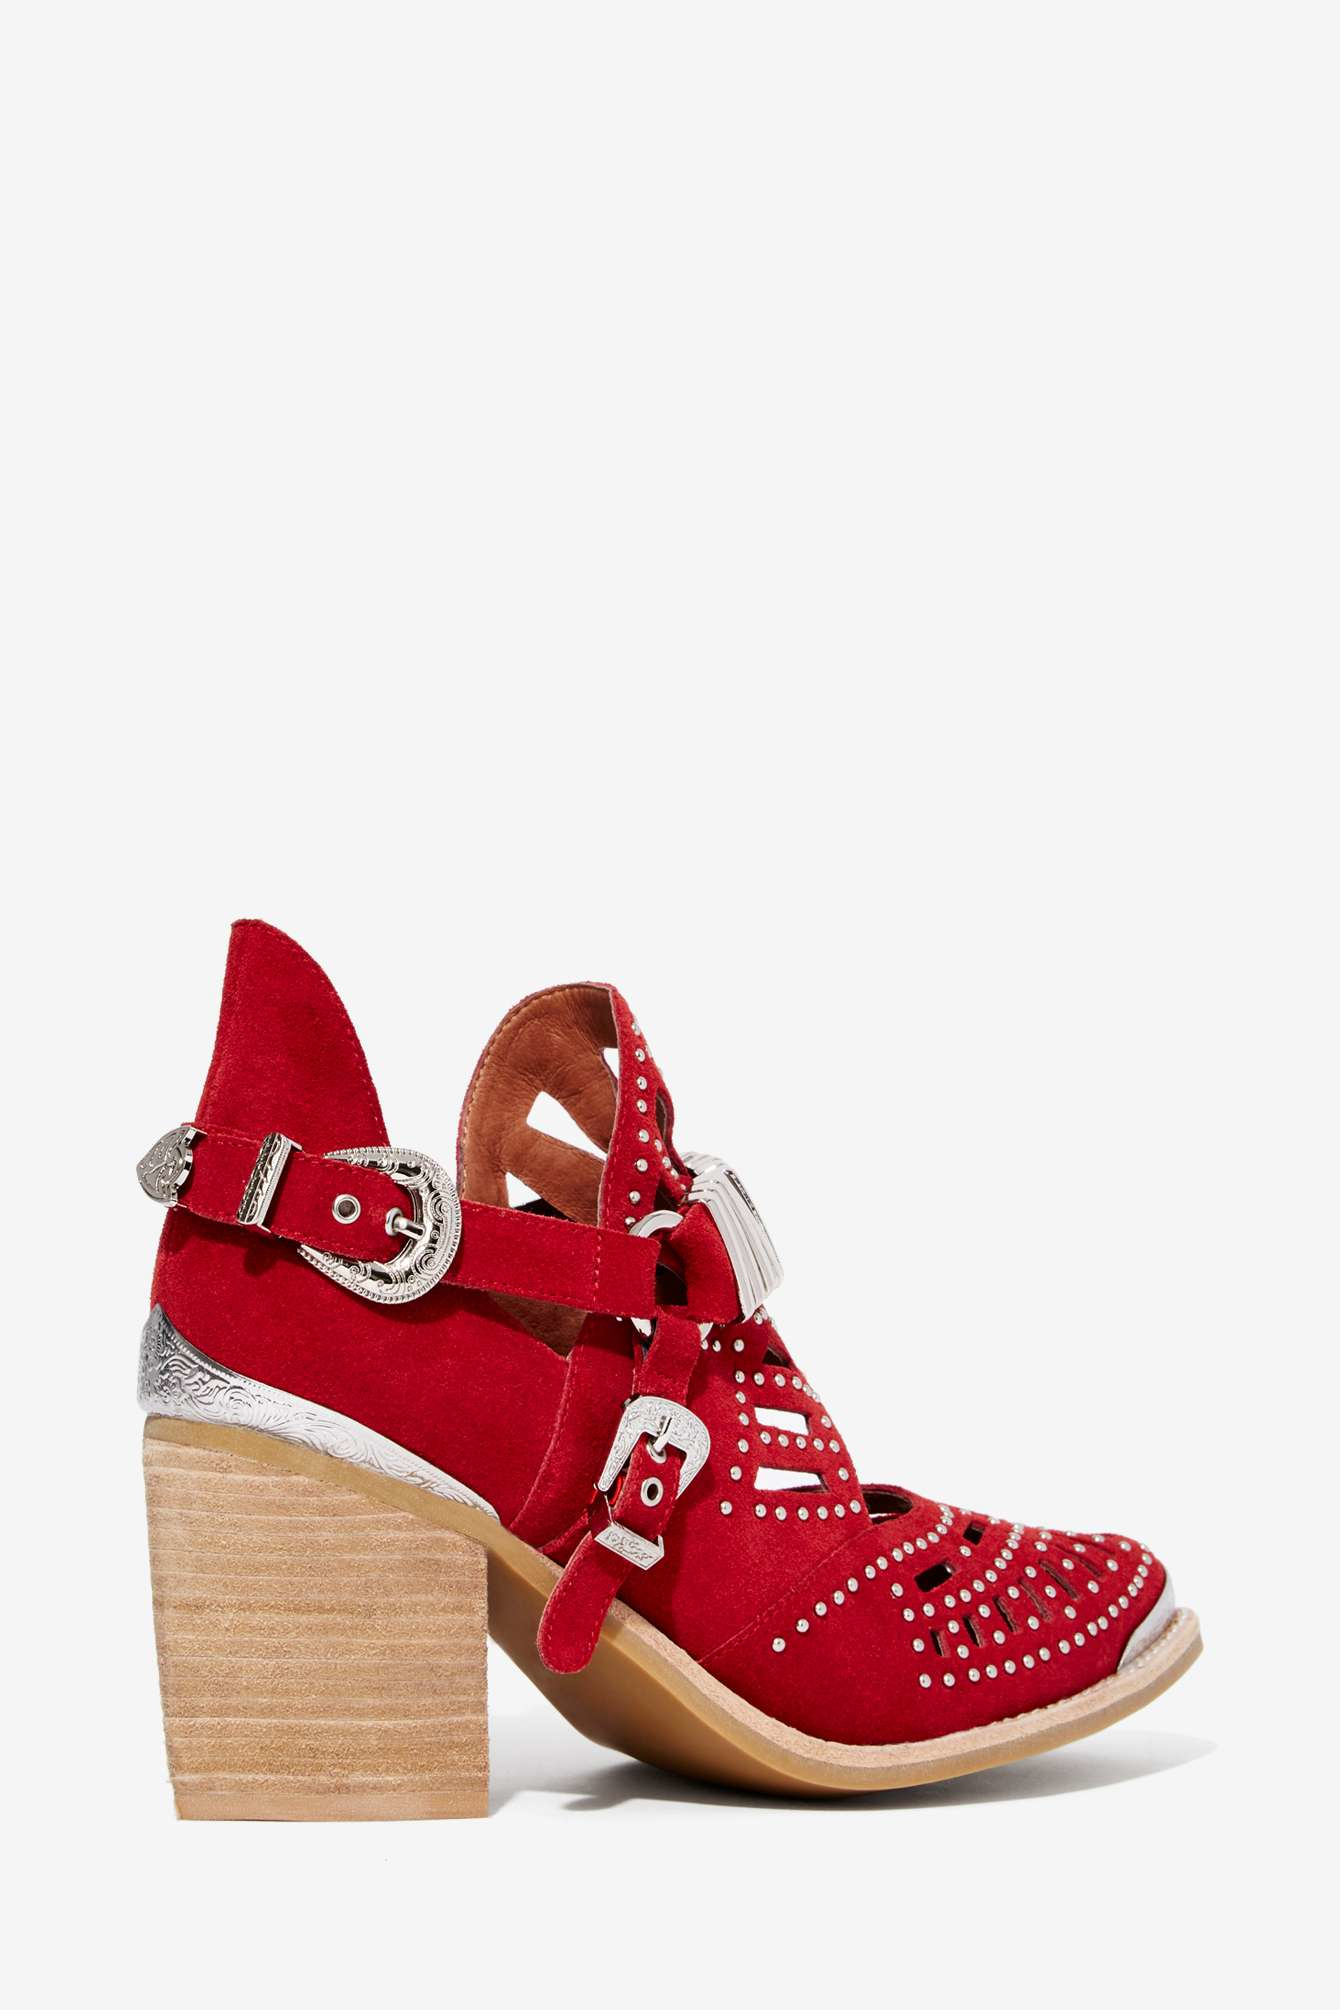 Jeffrey Campbell Women S Shoes